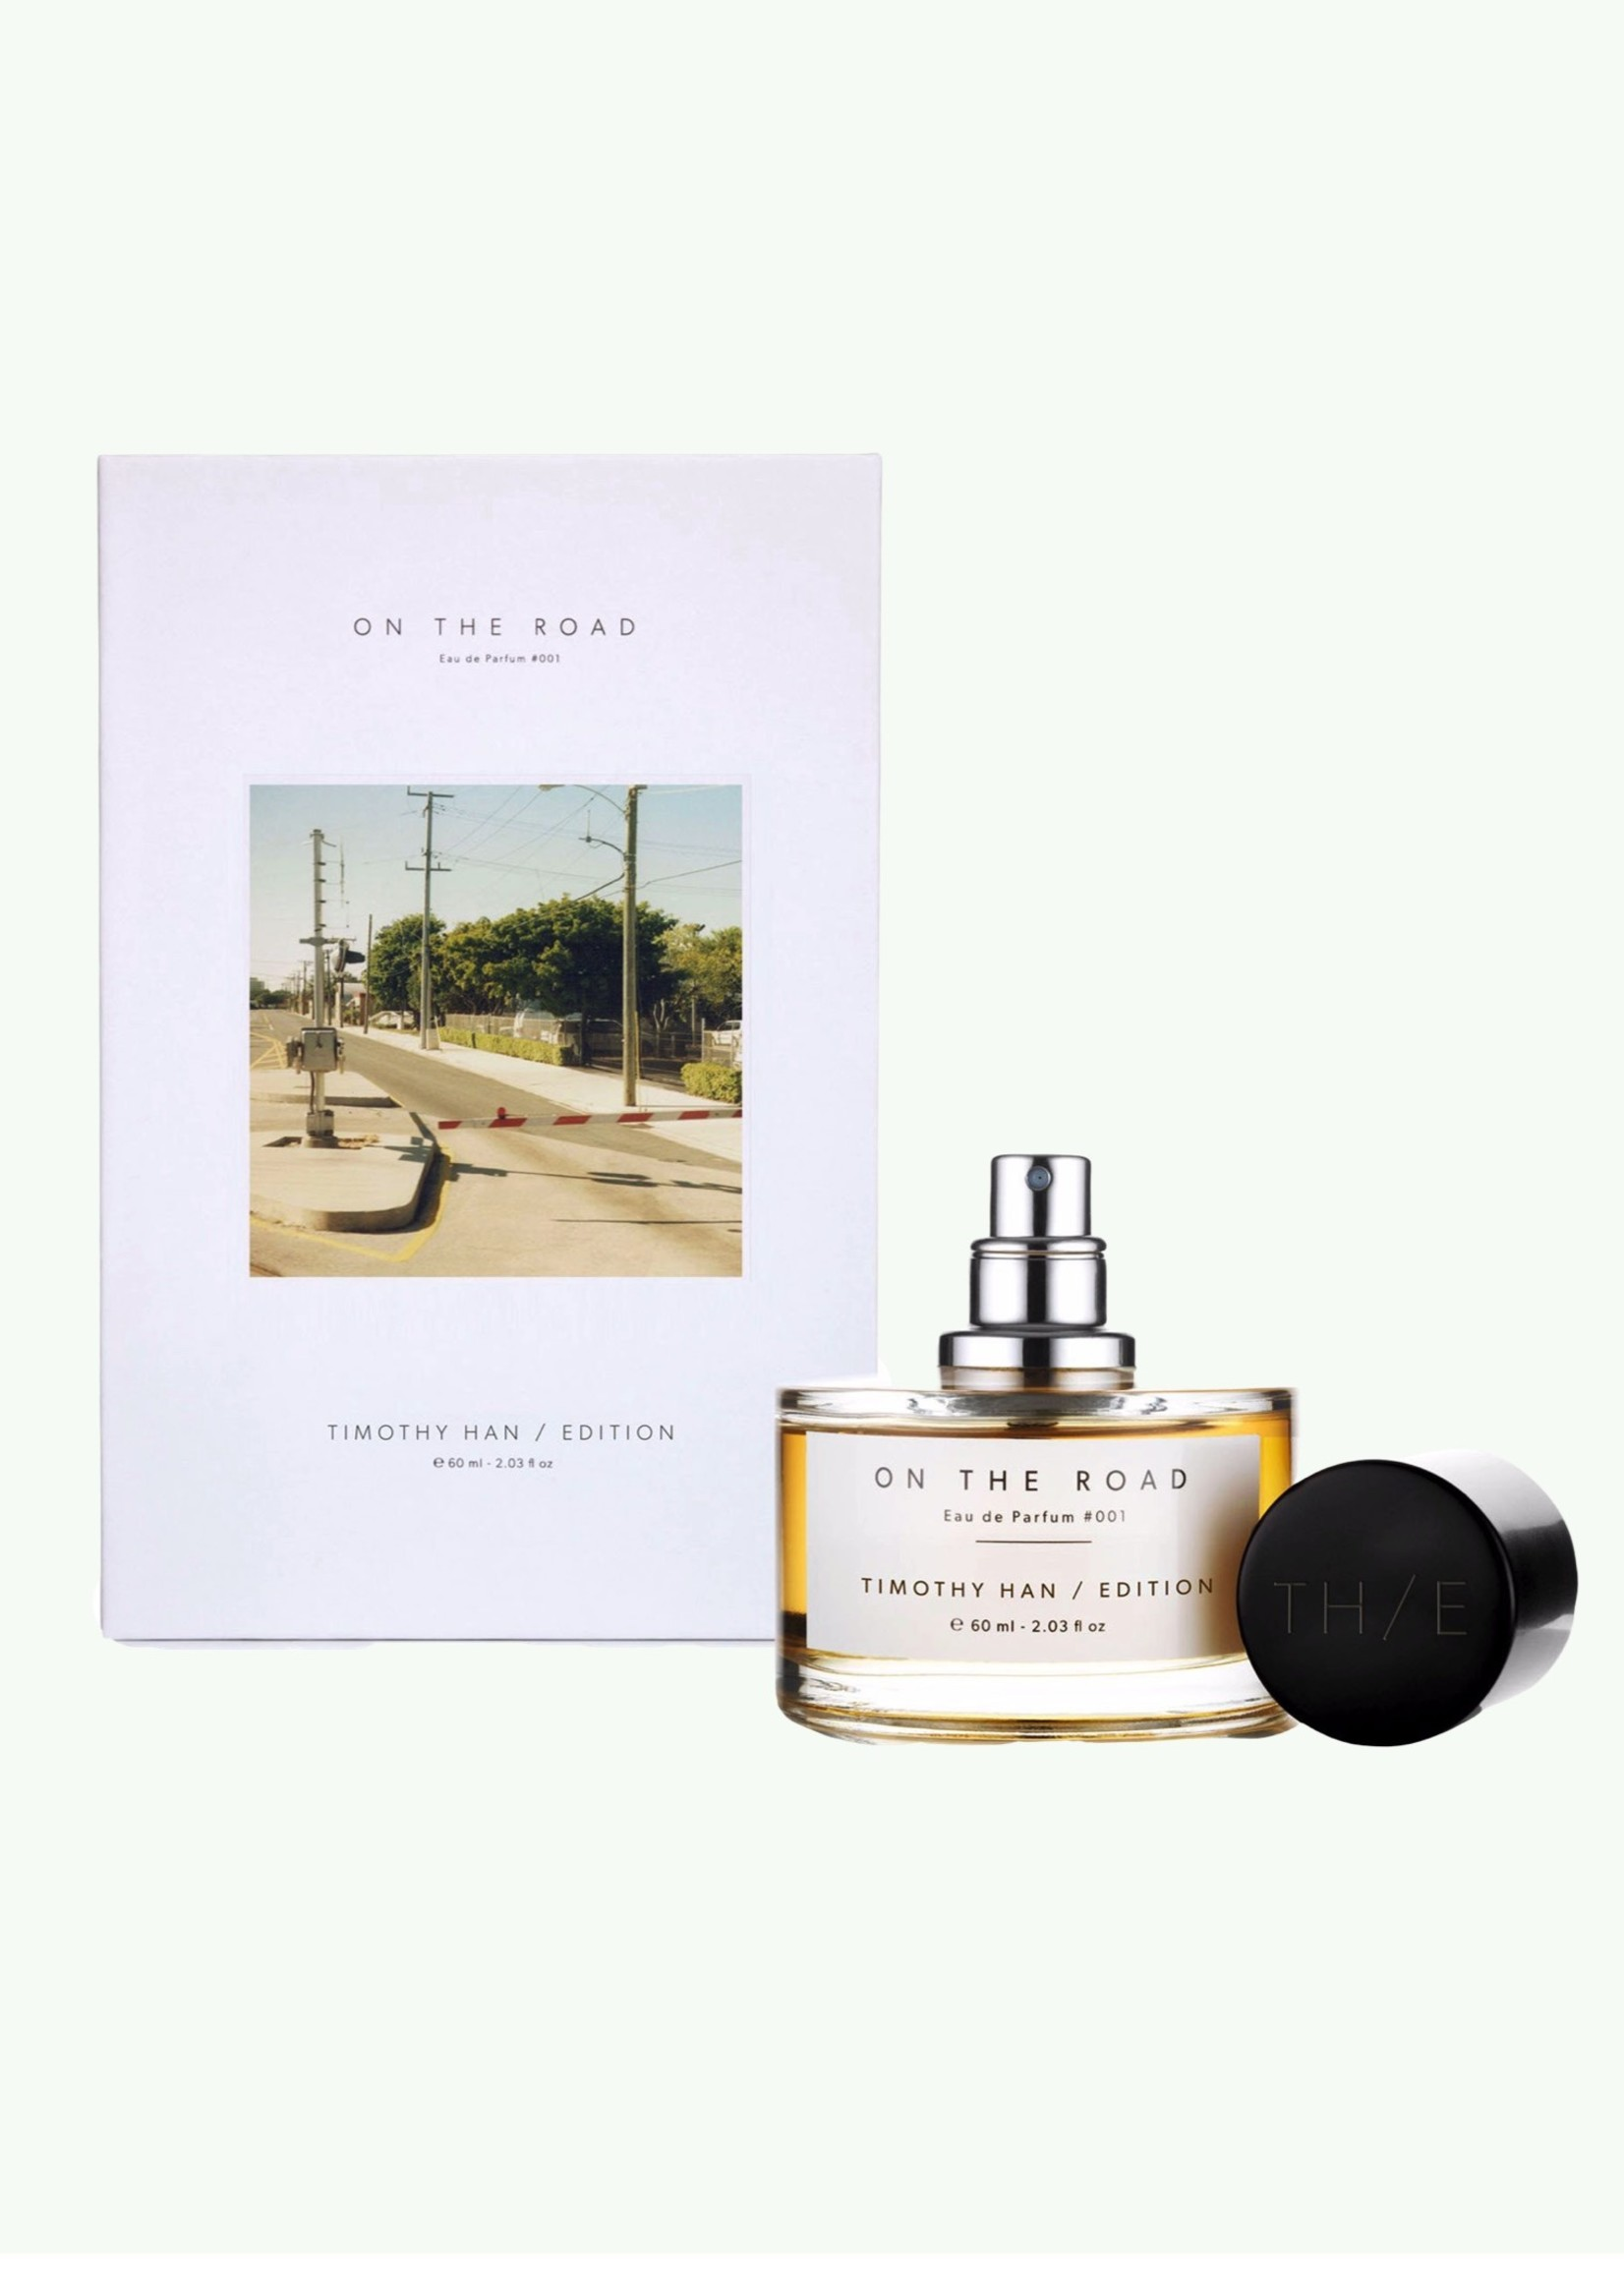 Timothy Han / Edition Timothy Han / Edition - On the Road - Eau de Parfum